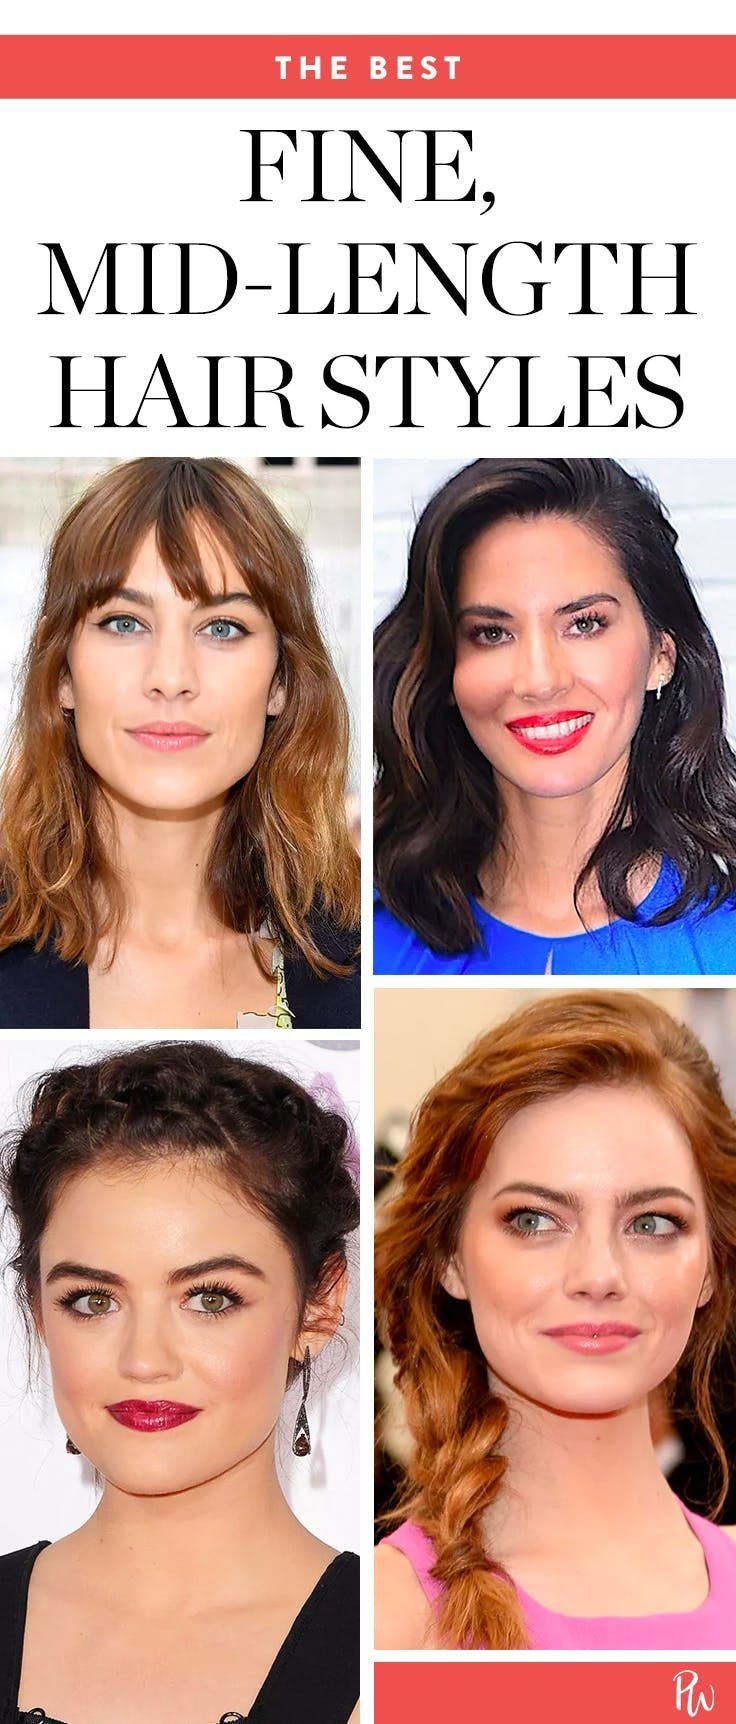 5 Styles That Add Volume to Your Fine, MidLength Hair